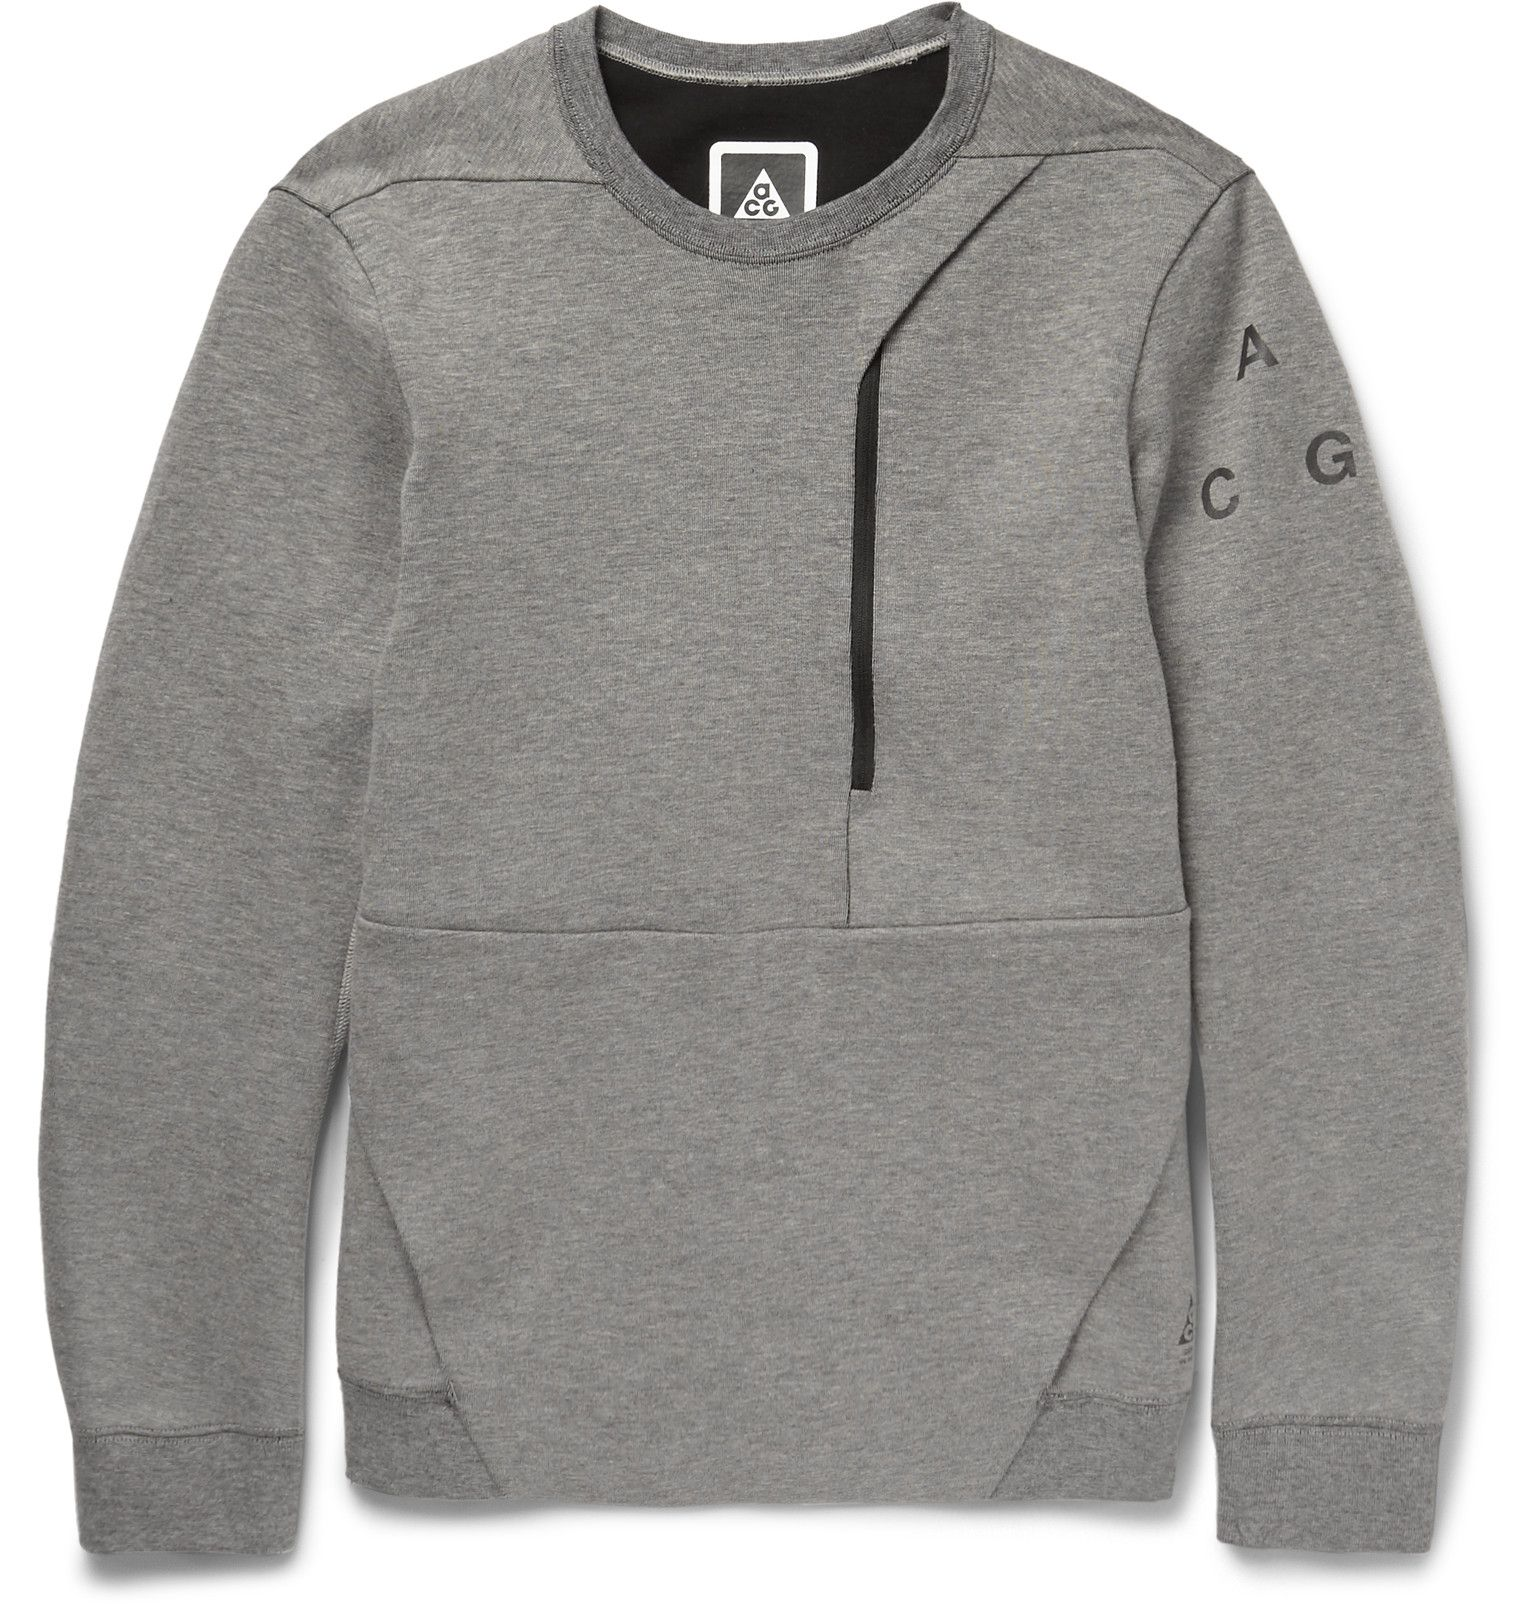 2d119e4db18b Nike - ACG Cotton-Blend Tech Fleece Sweatshirt